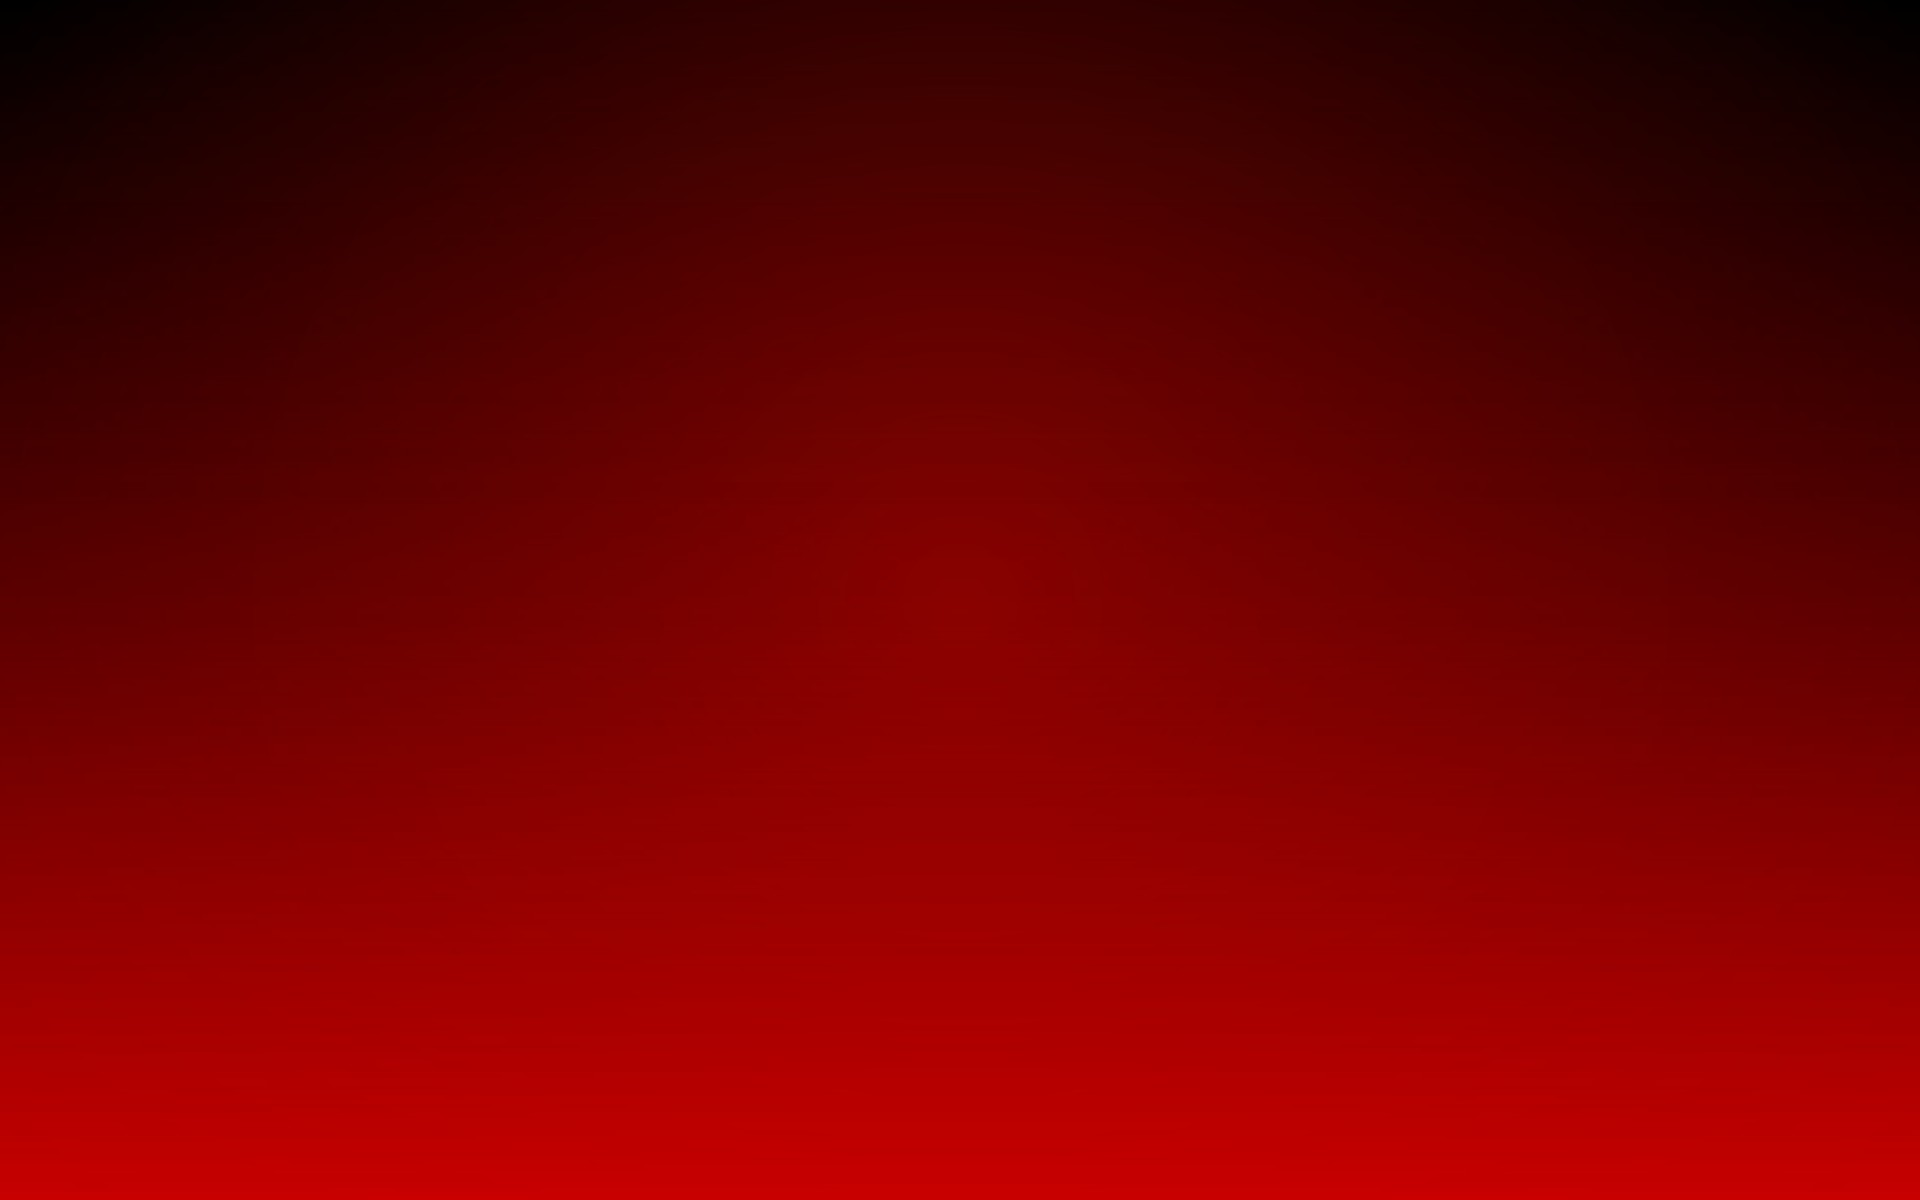 Red Gradient Background 183 ① Download Free Cool Hd